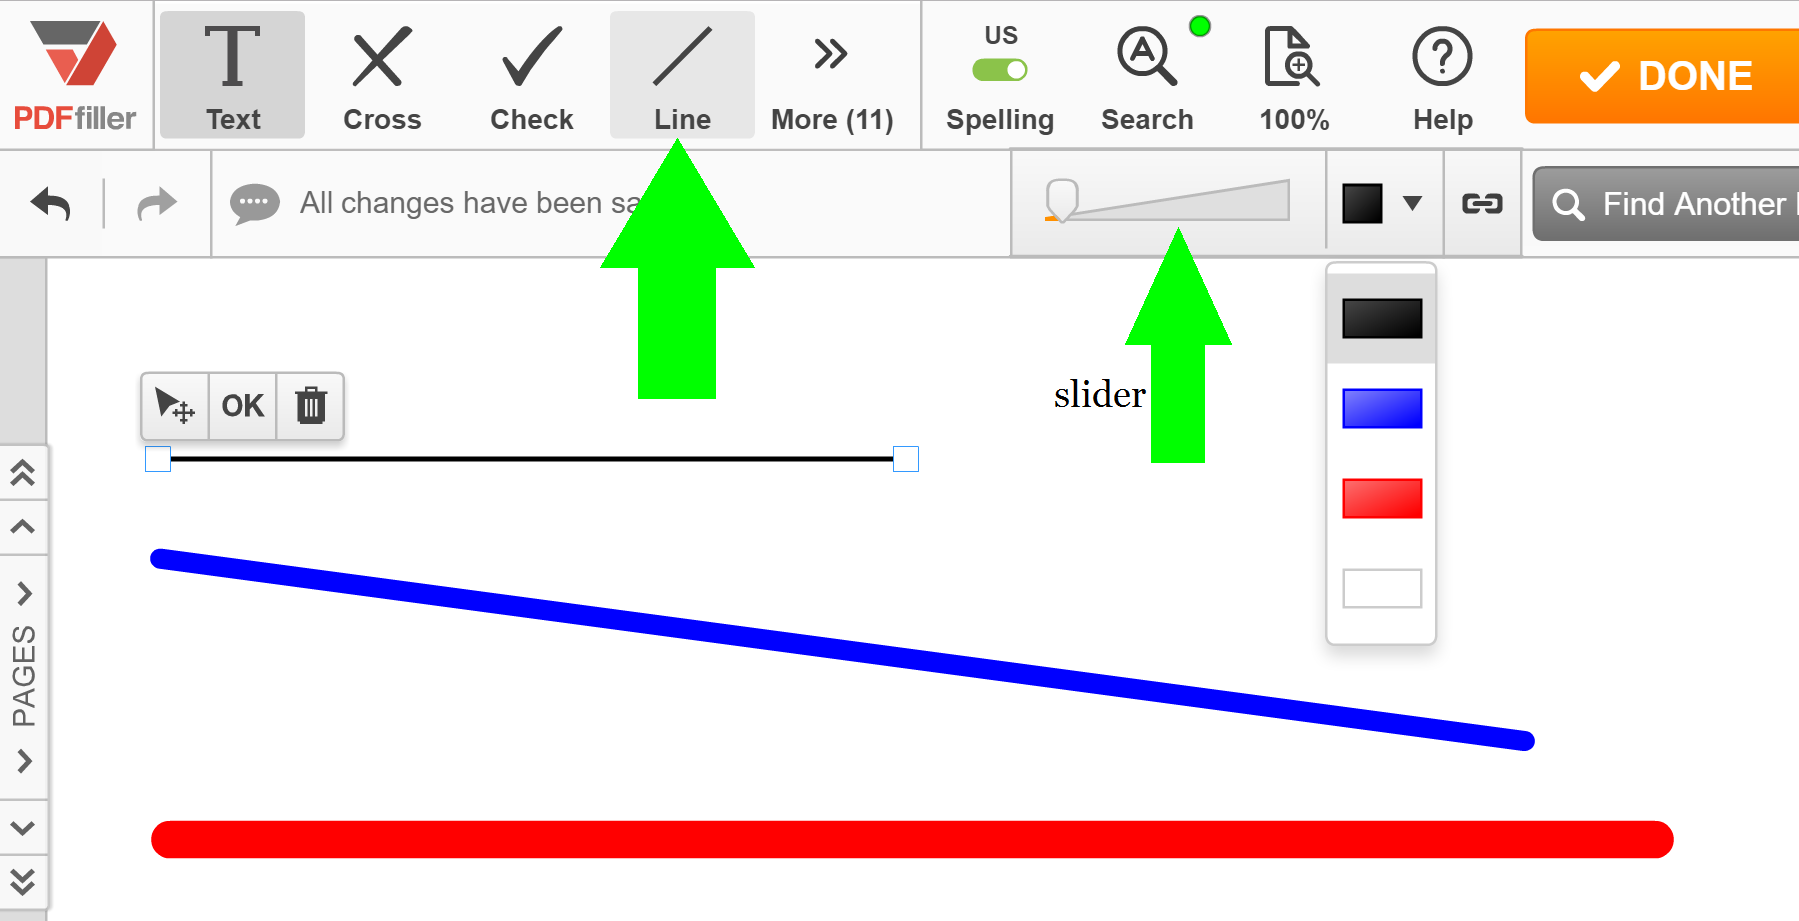 Line Drawing Editor : Draw line in pdf search edit fill sign fax save